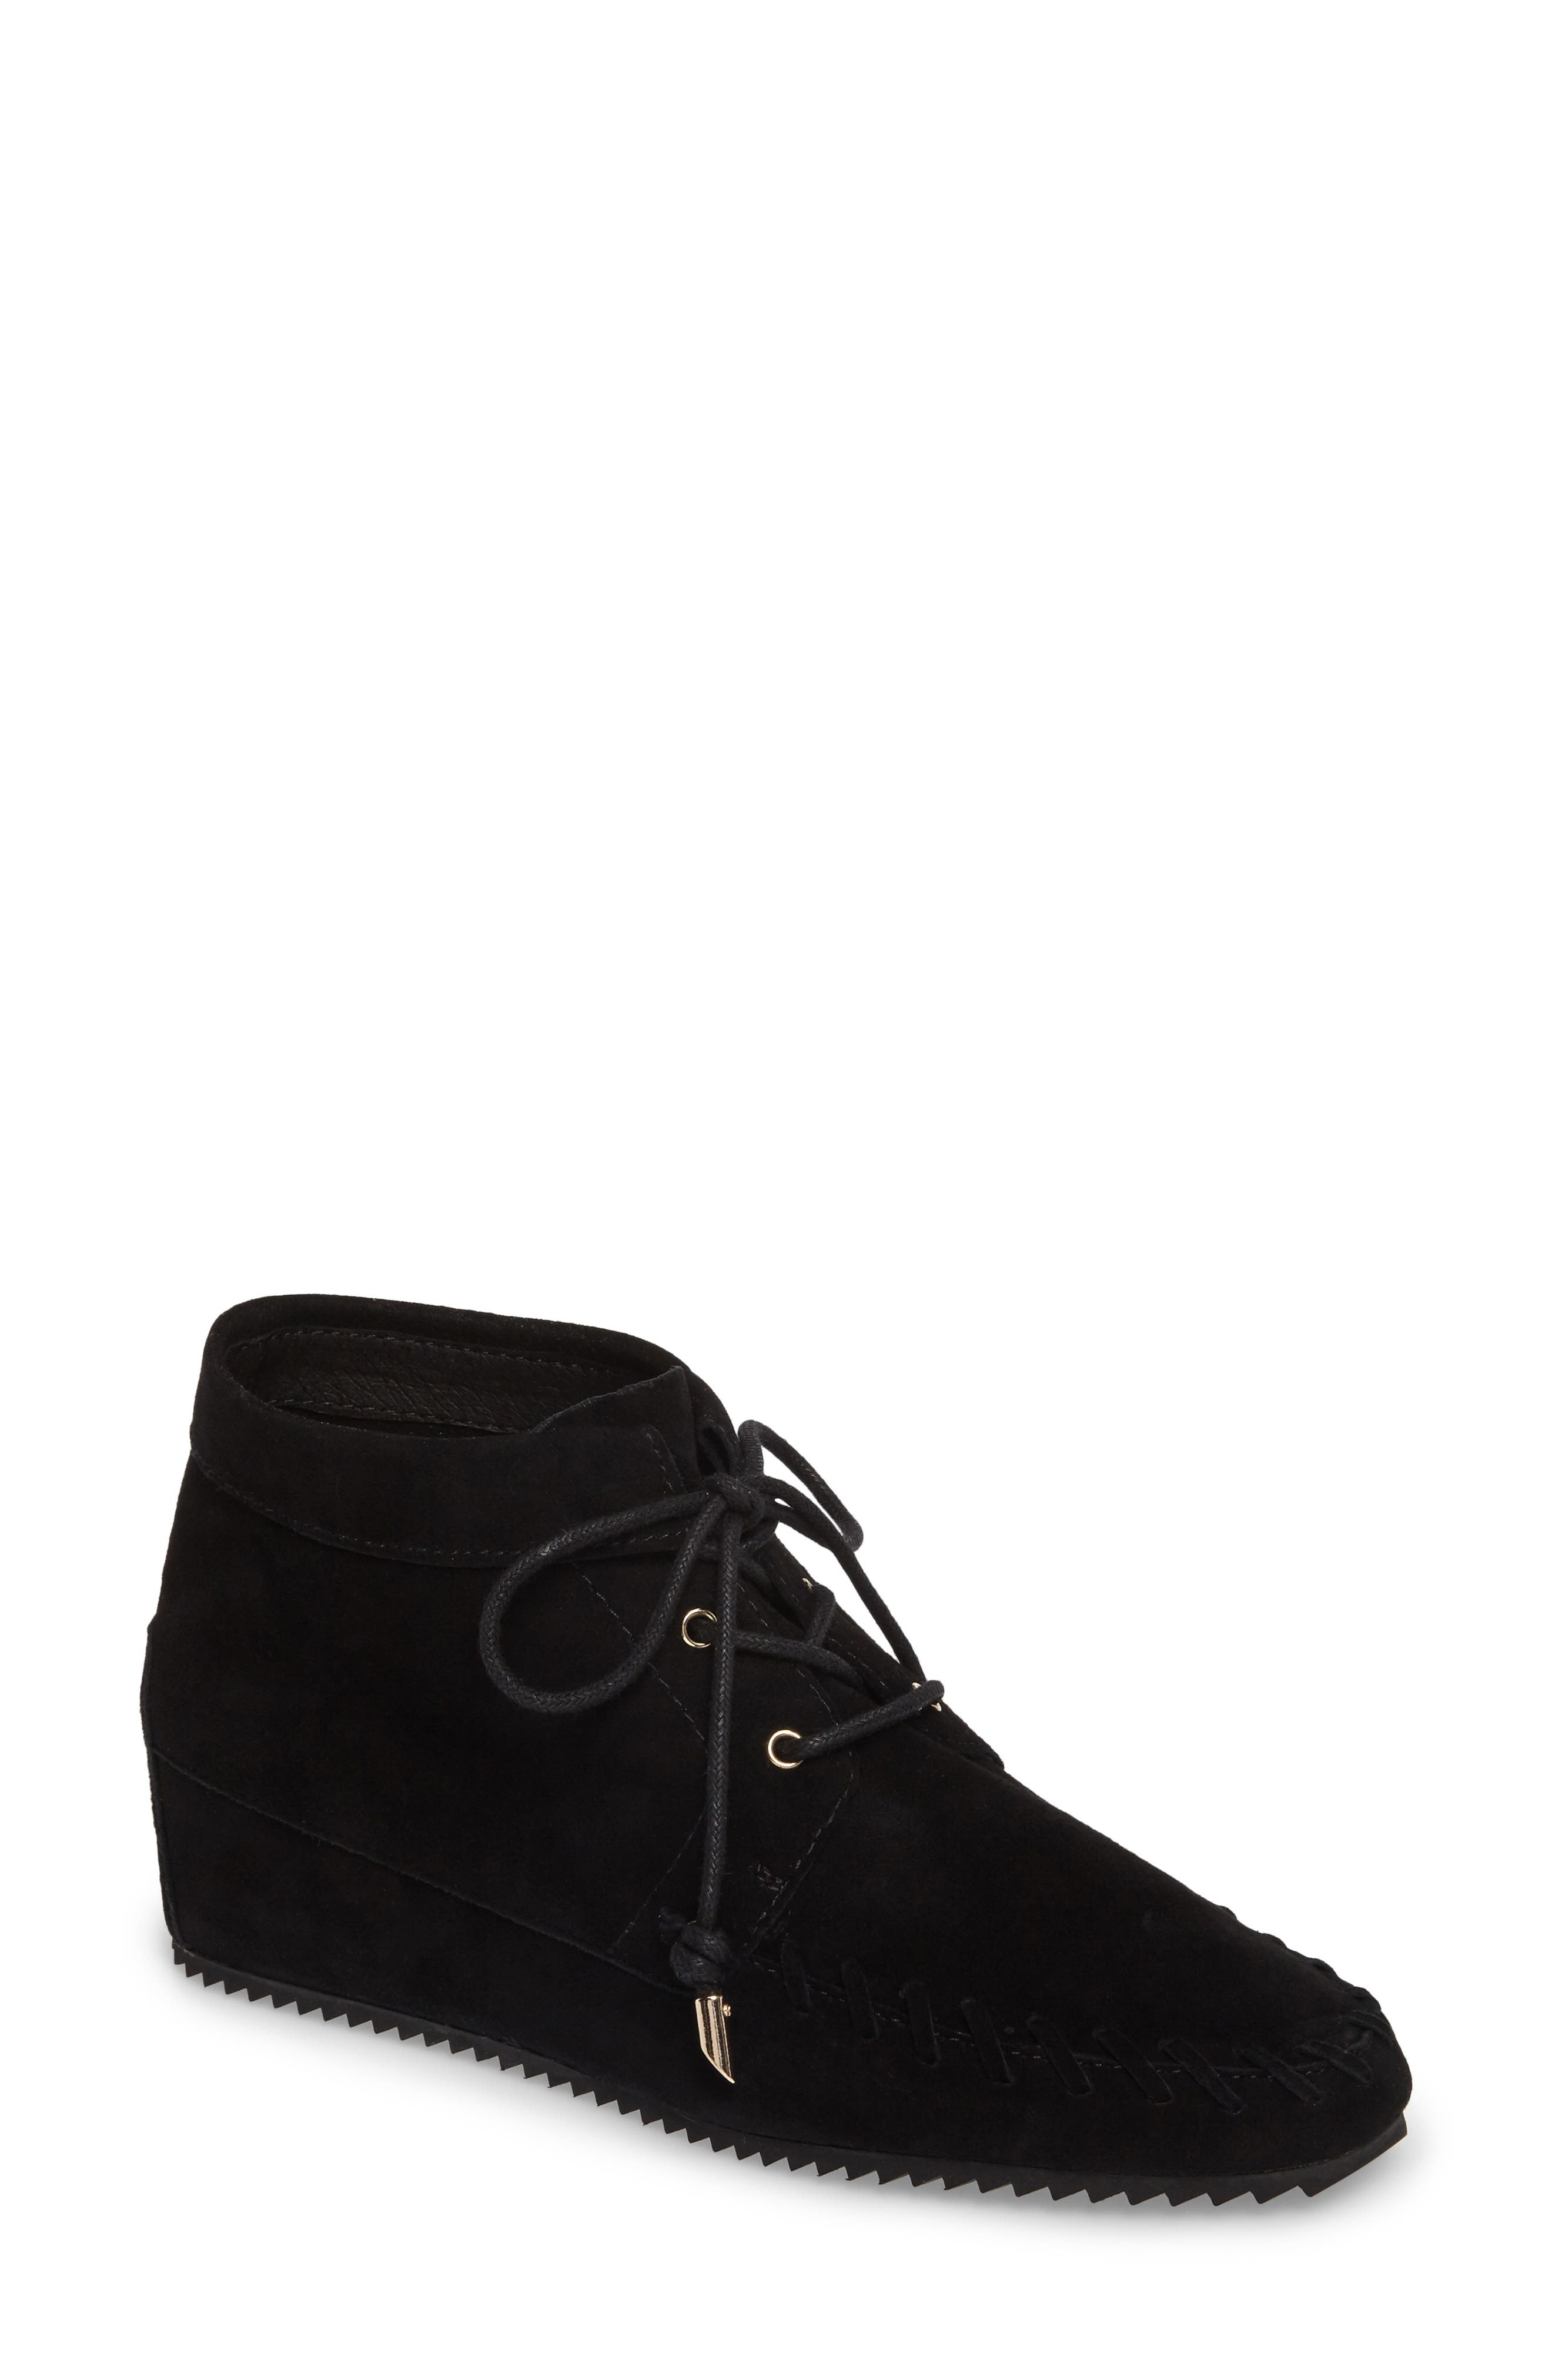 Jenna Wedge Bootie,                             Main thumbnail 1, color,                             001